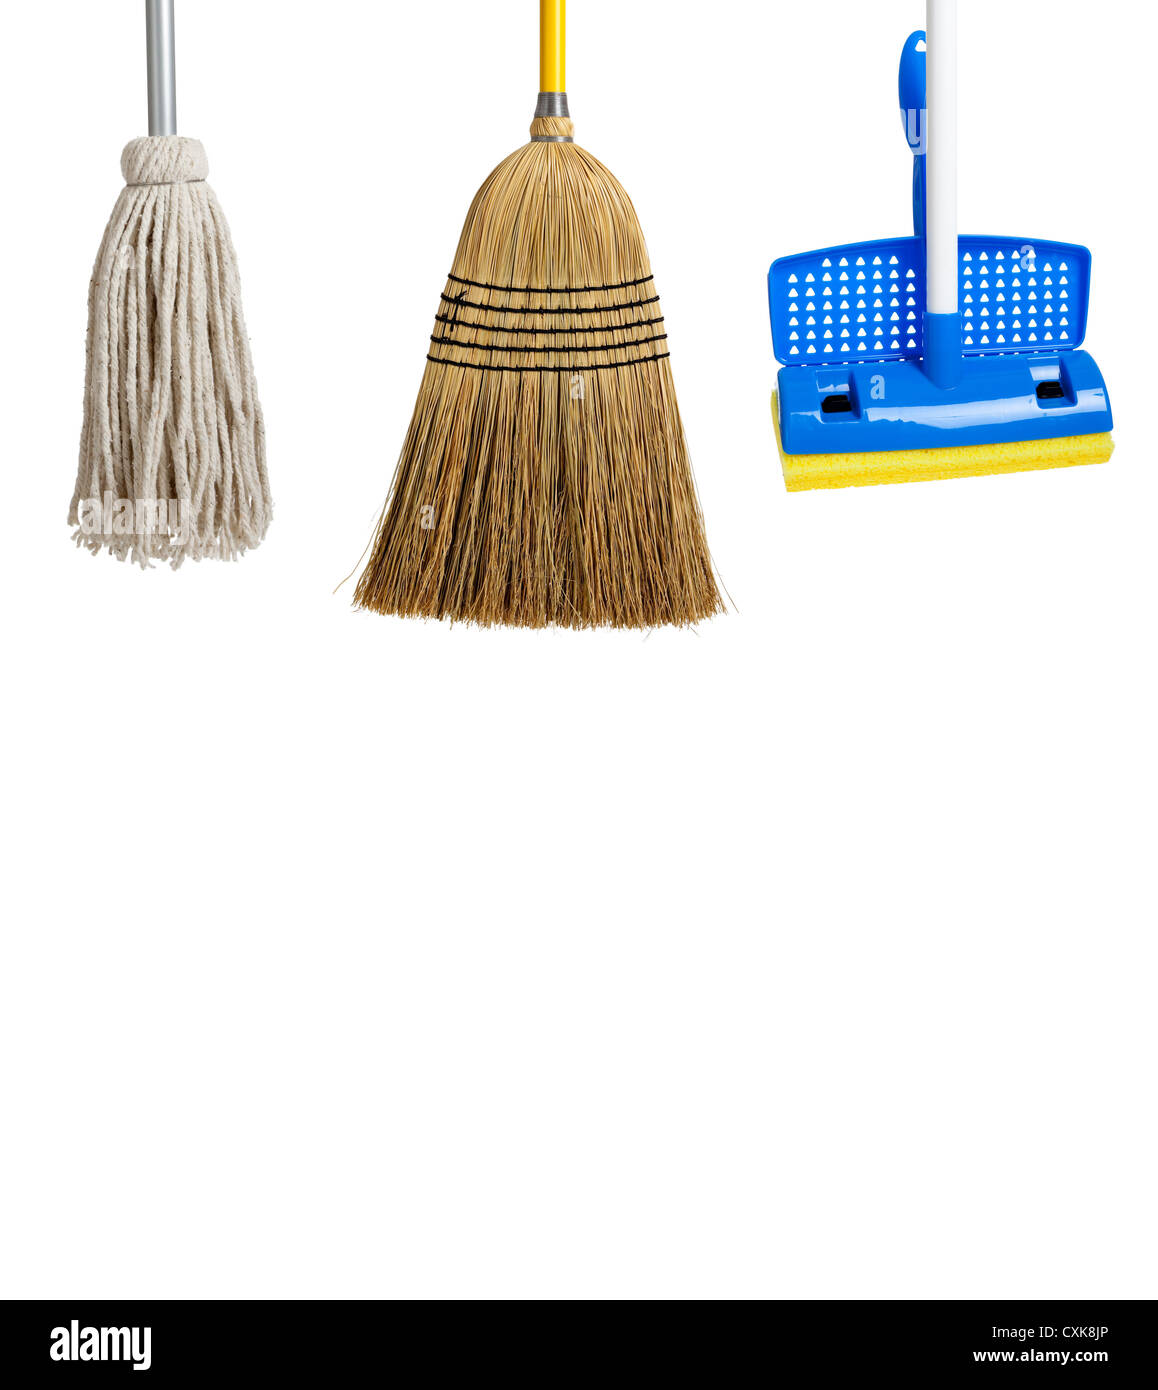 Blue and yellow sponge mop, broom and string mop on a white background - Stock Image